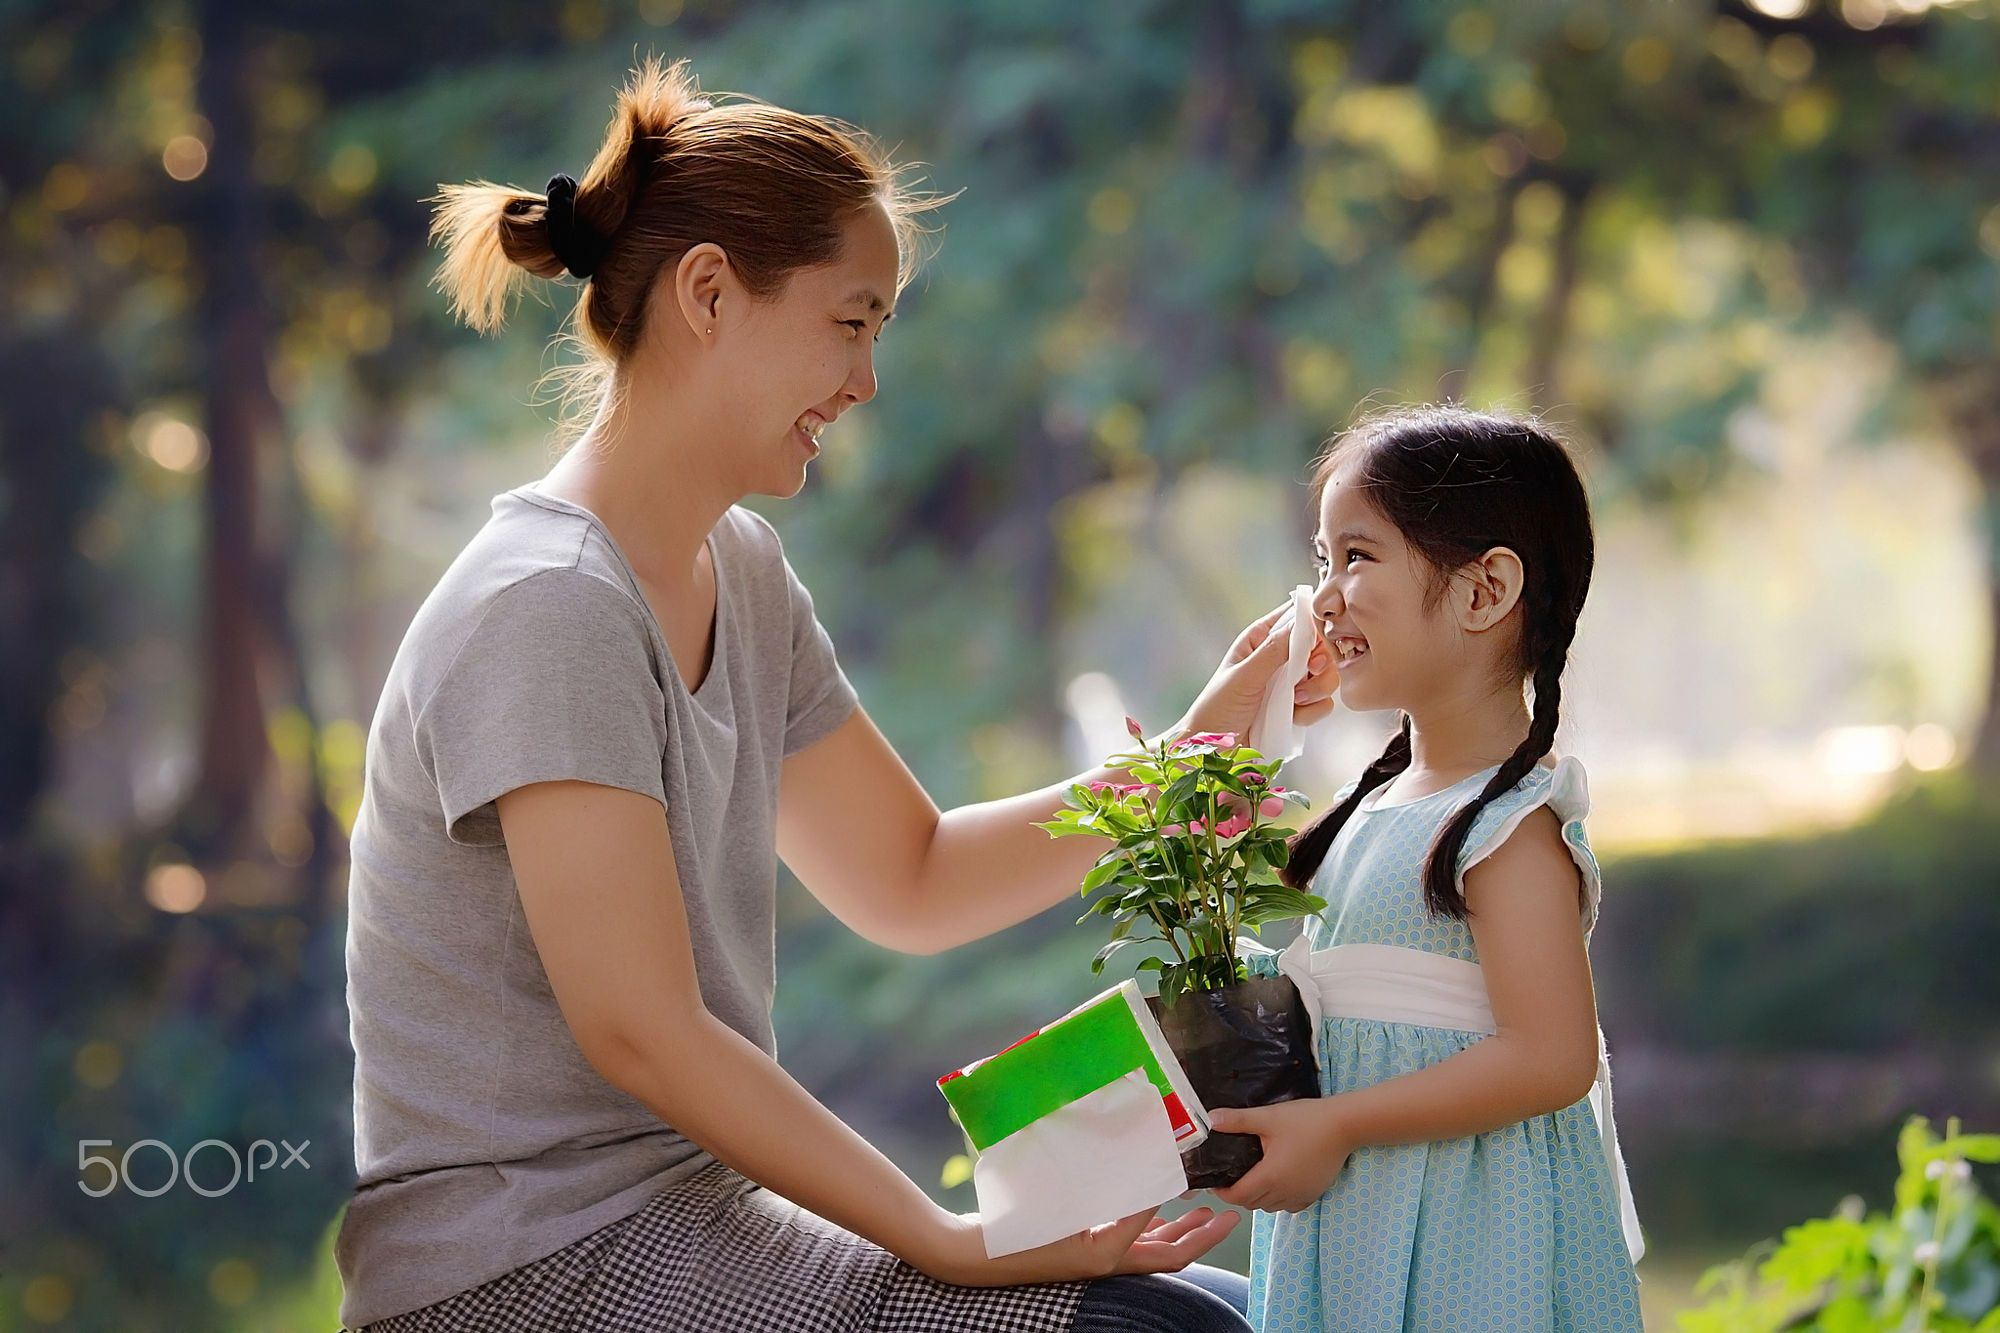 Asian mother cleaning her daughter's face, planting flower together